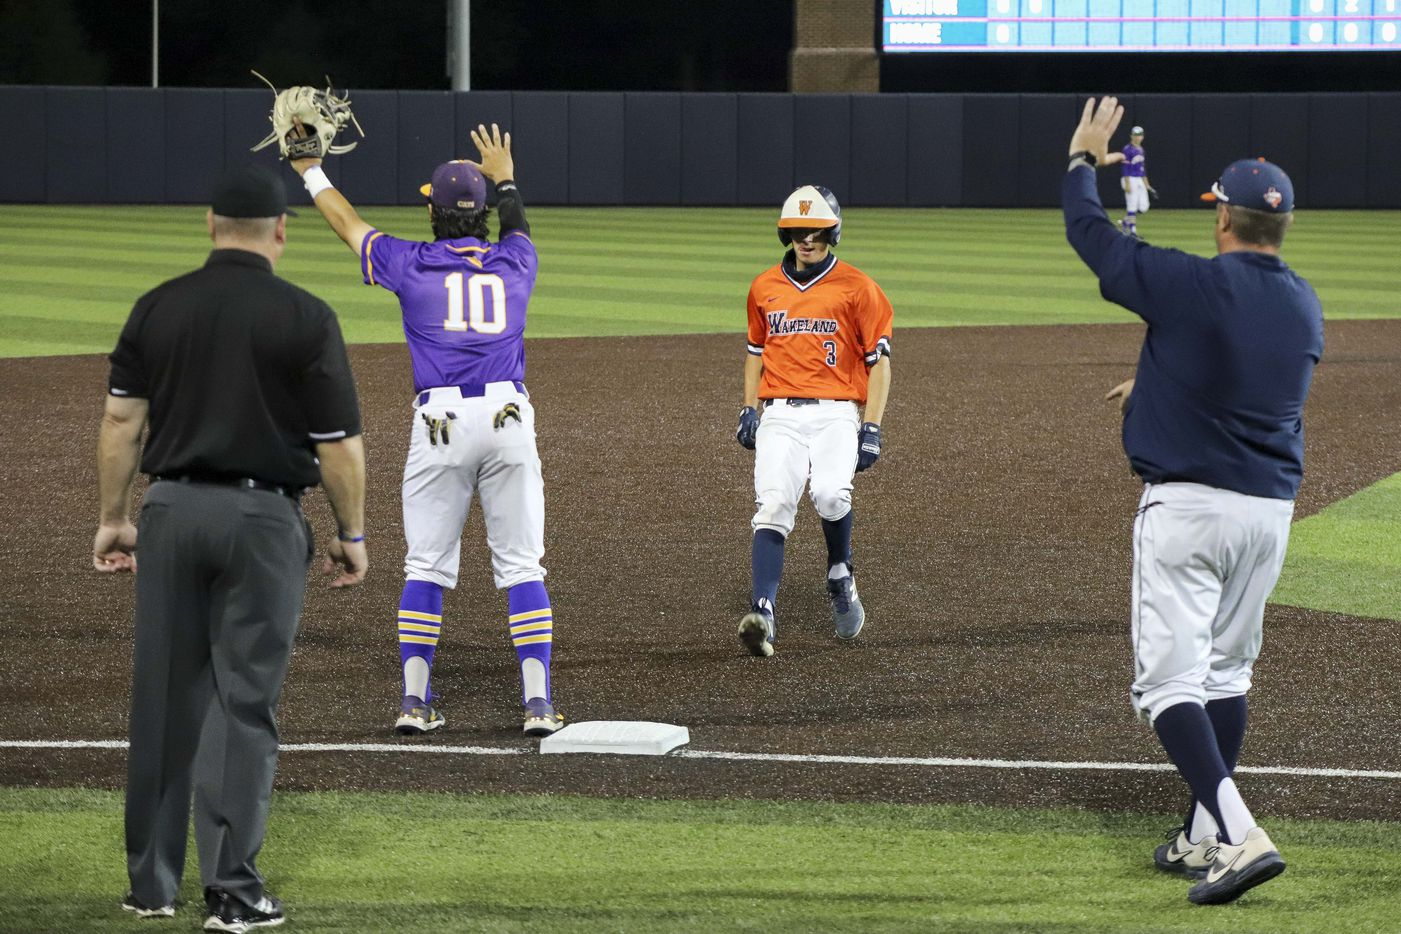 Frisco Wakeland designated hitter Luke Robertson (3) reaches third base after a sacrifice fly during game two of the UIL baseball 5A Region II final series against Hallsville at Horner Ballpark in Dallas on Friday, June 4, 2021. (Elias Valverde II / Special Contributor)